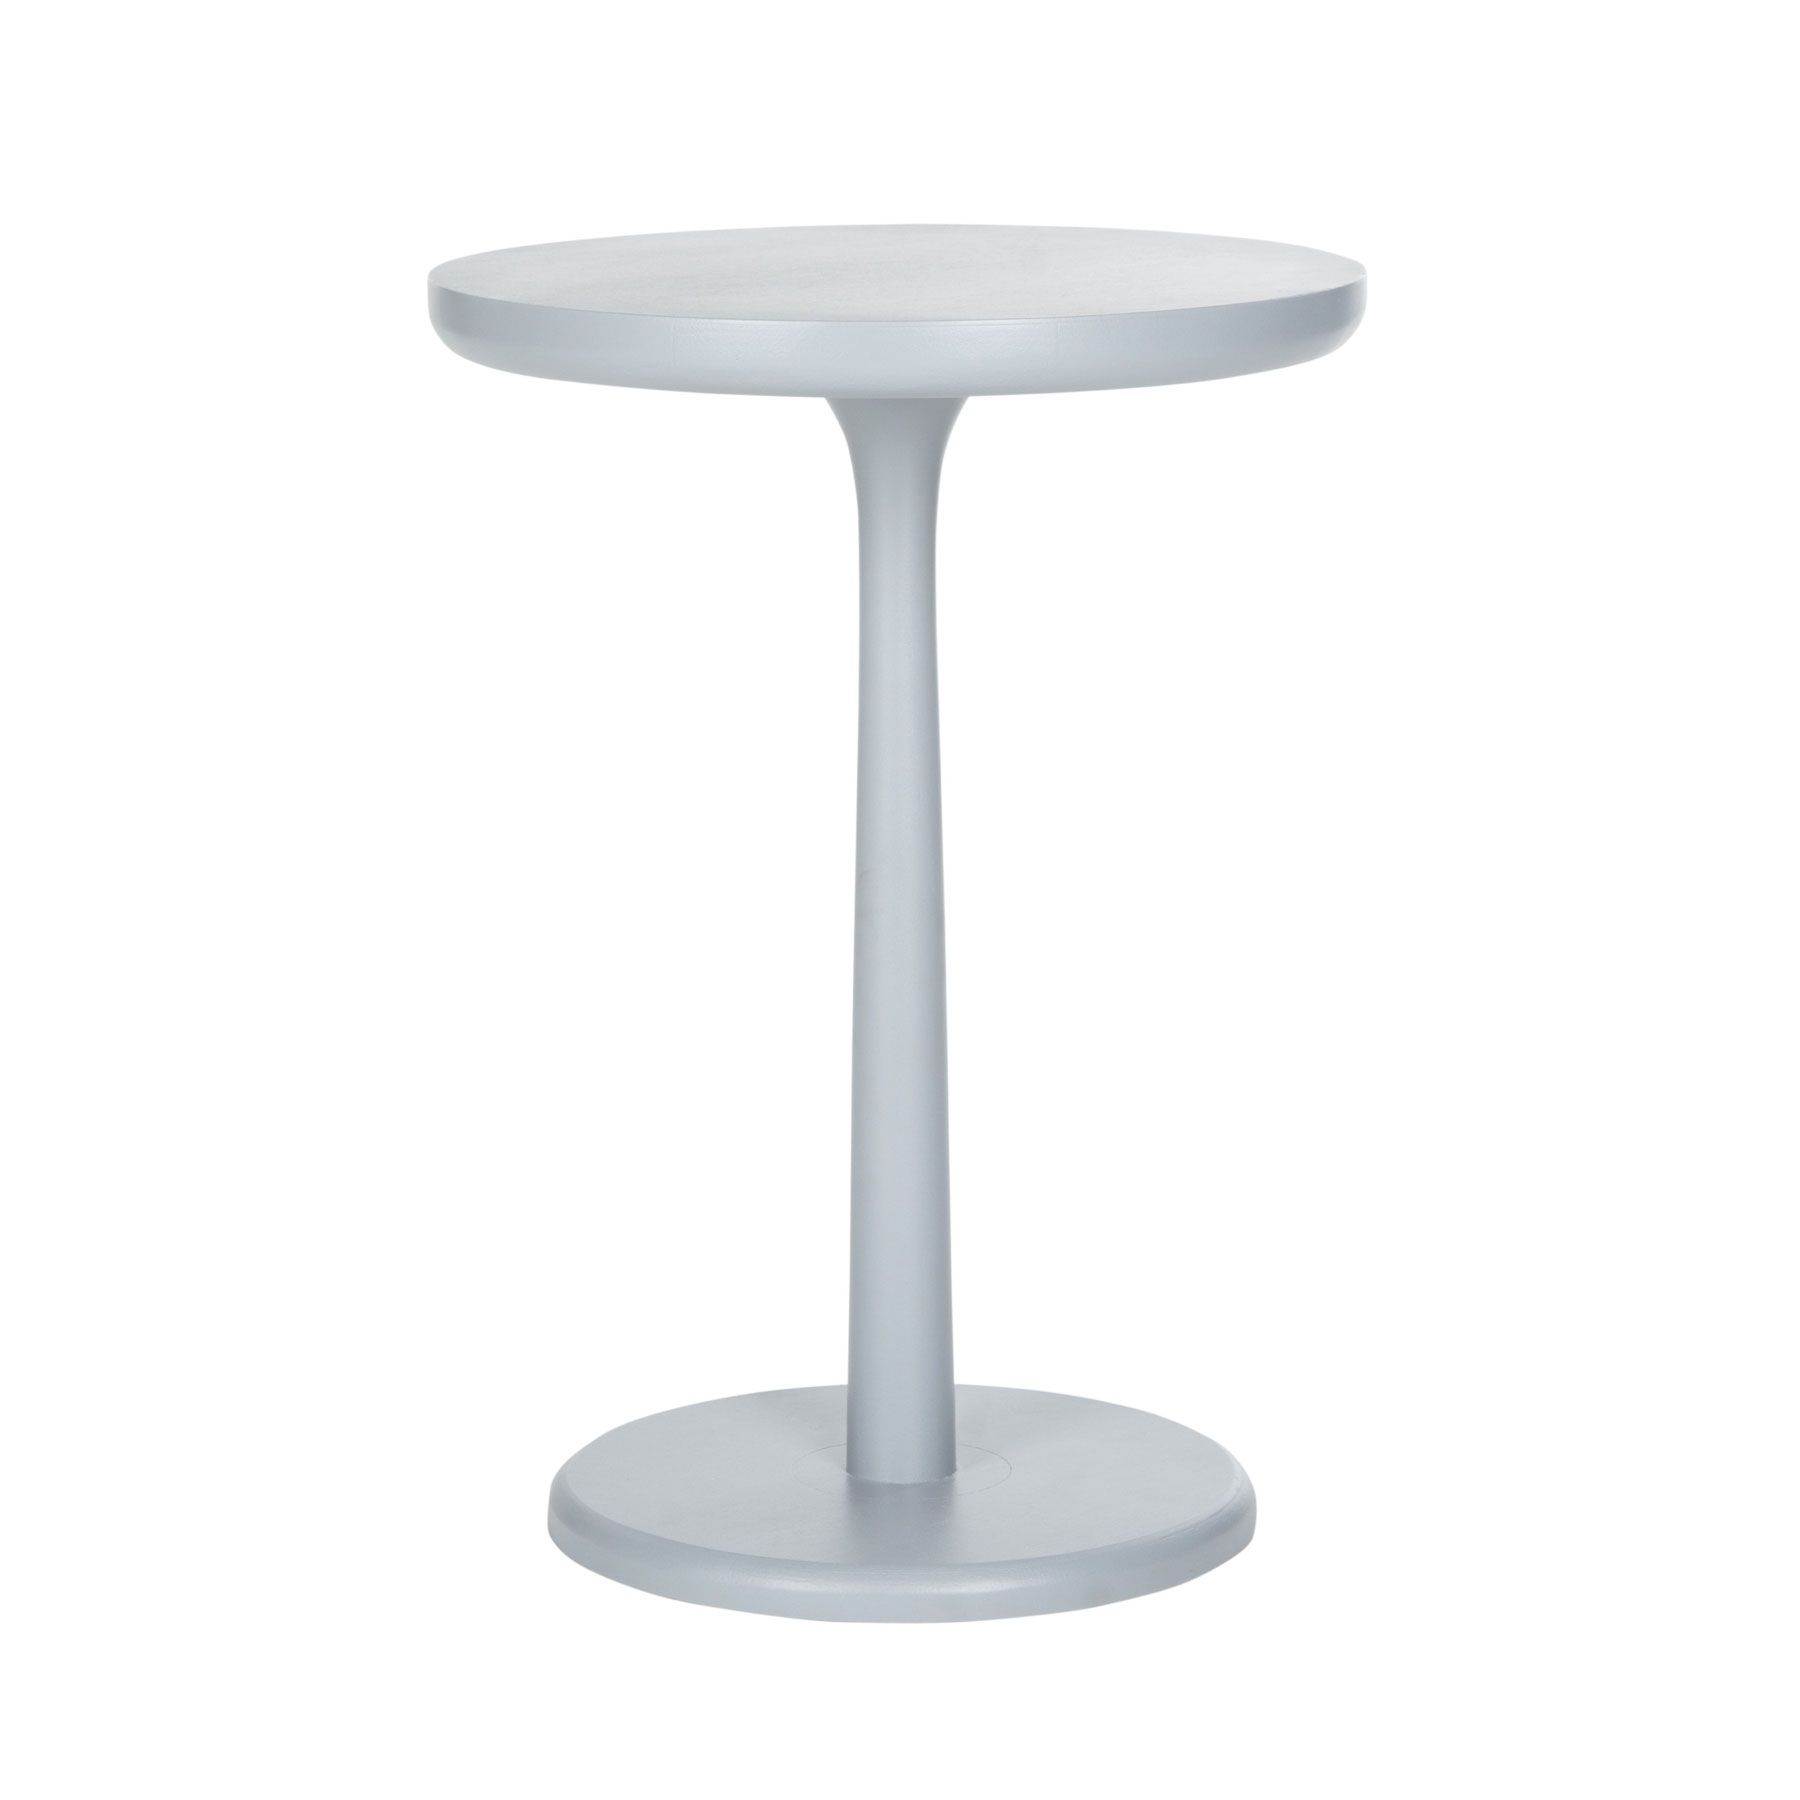 pedestal end table dotandbo dining room modern accent small sofas for spaces painted side tables living blues clues notebook round wicker coffee with glass top target outdoor